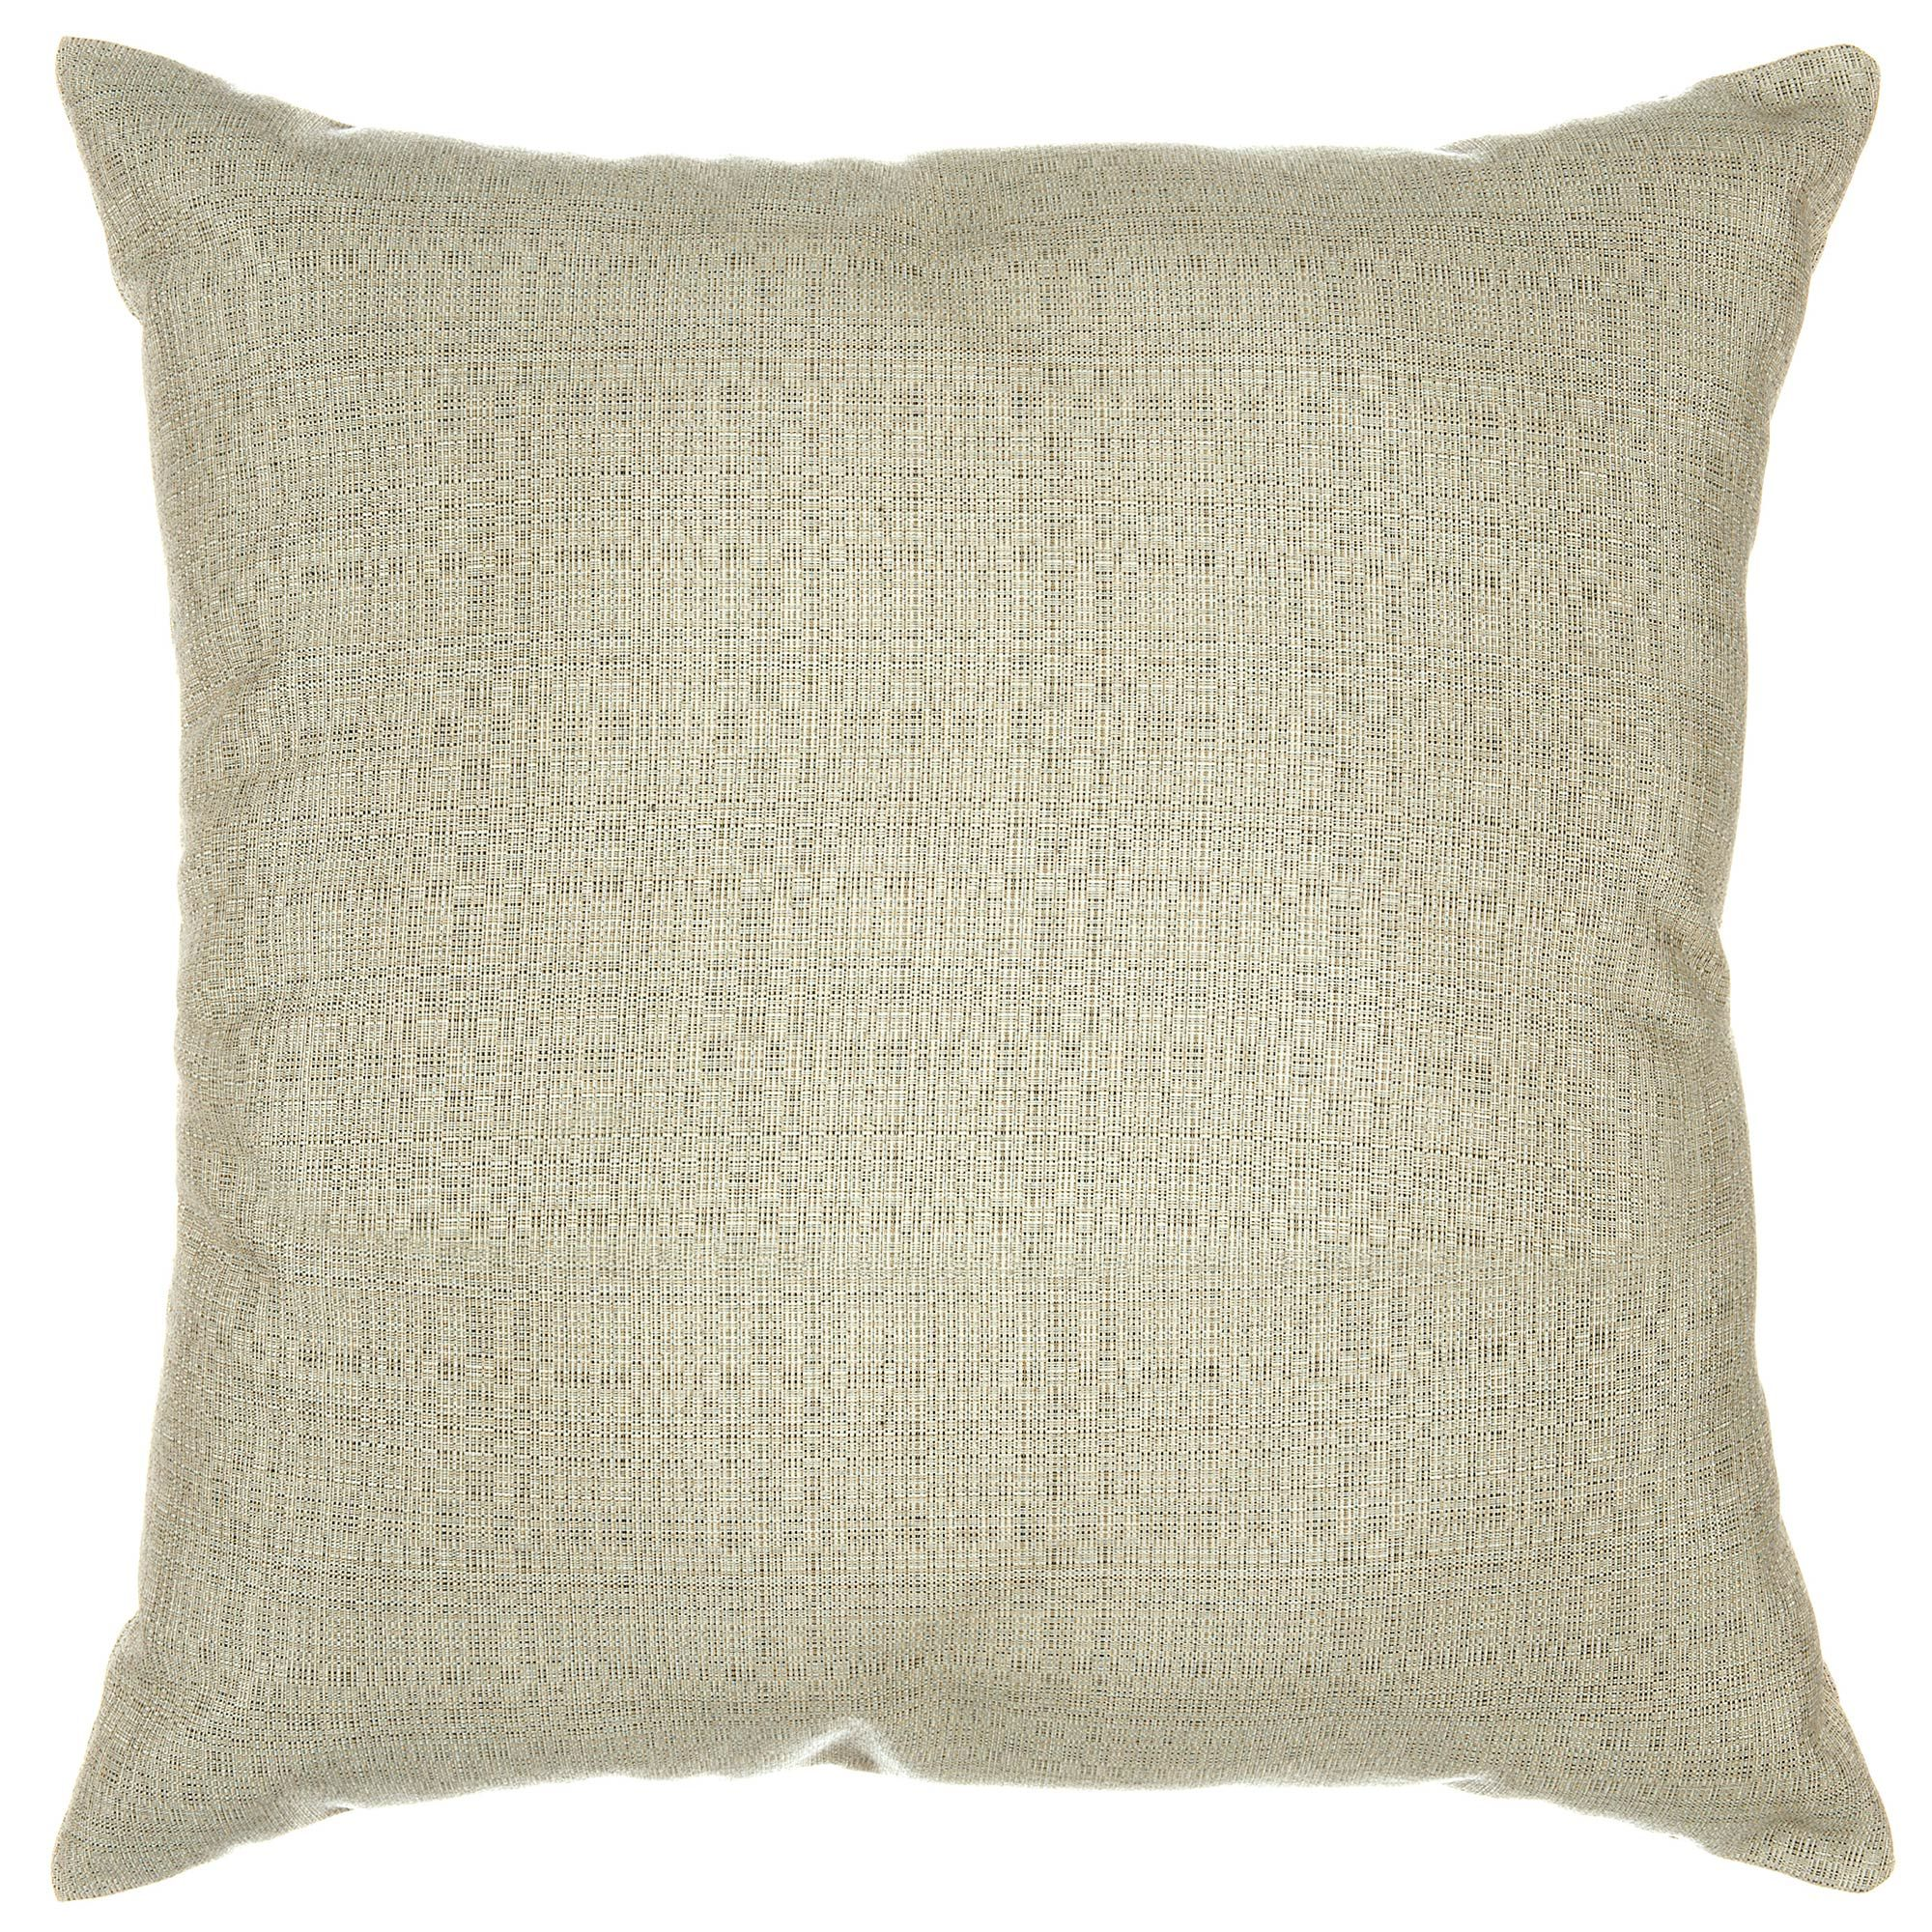 Linen Silver Sunbrella Designer Porch Pillow by Pawleys Island